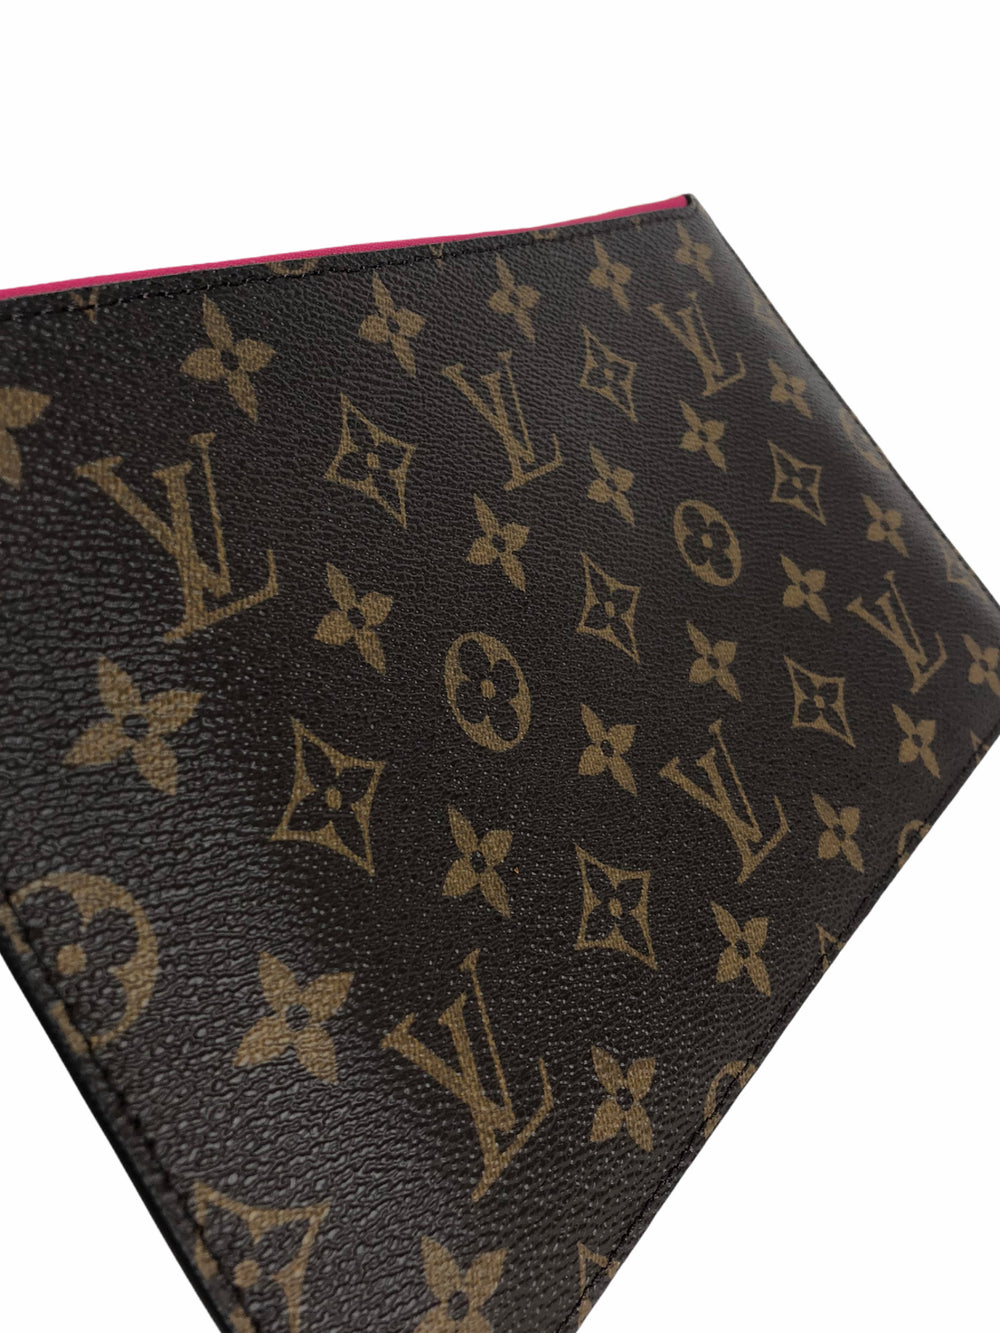 Louis Vuitton Monogram Pochette - As Seen on Instagram 18/10/2020